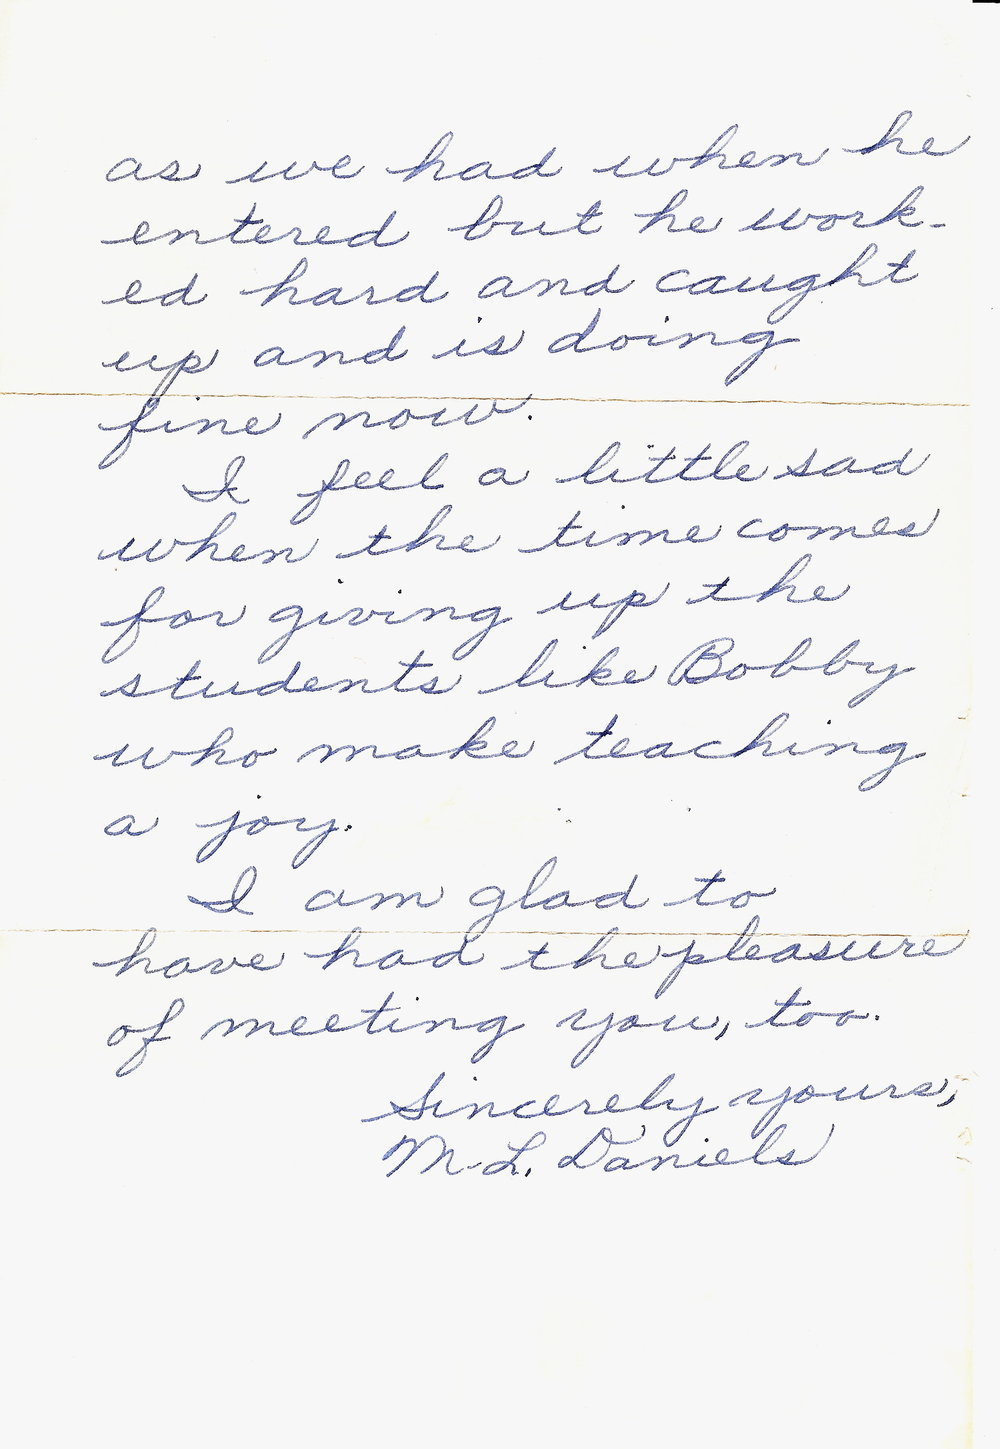 1958 - Age 9 - Letter from Mrs. Daniels - page 2